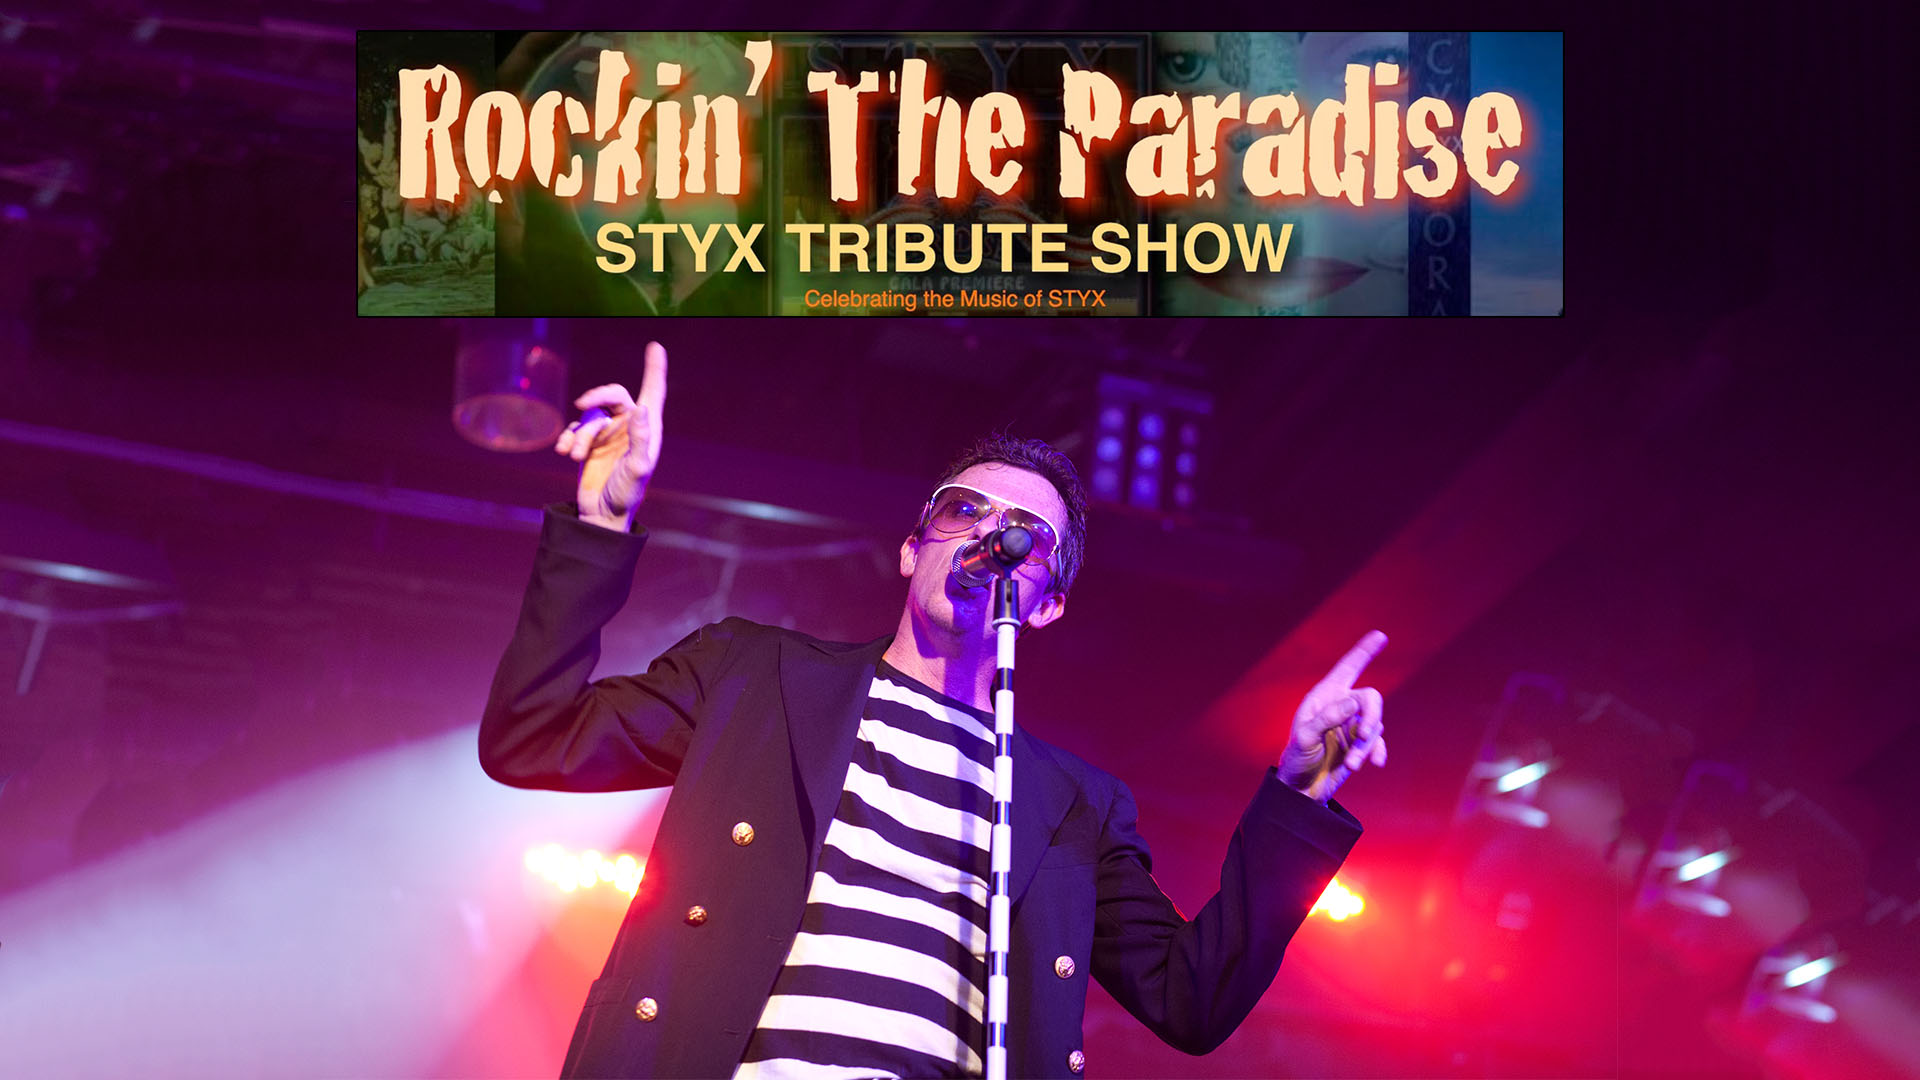 Rockin' The Paradise: Styx Tribute Show